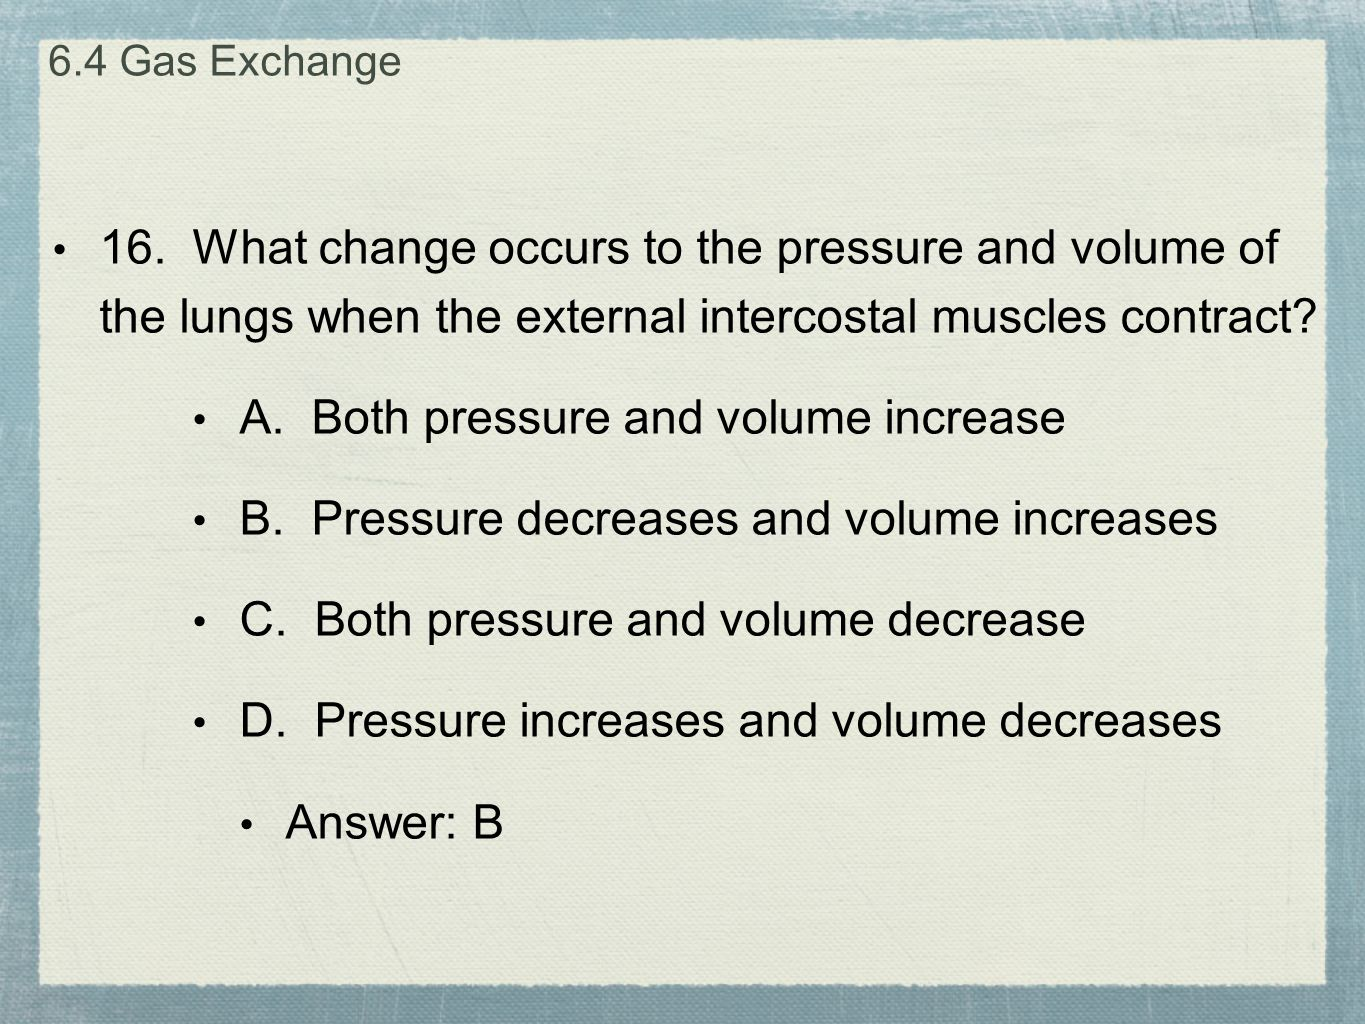 A. Both pressure and volume increase